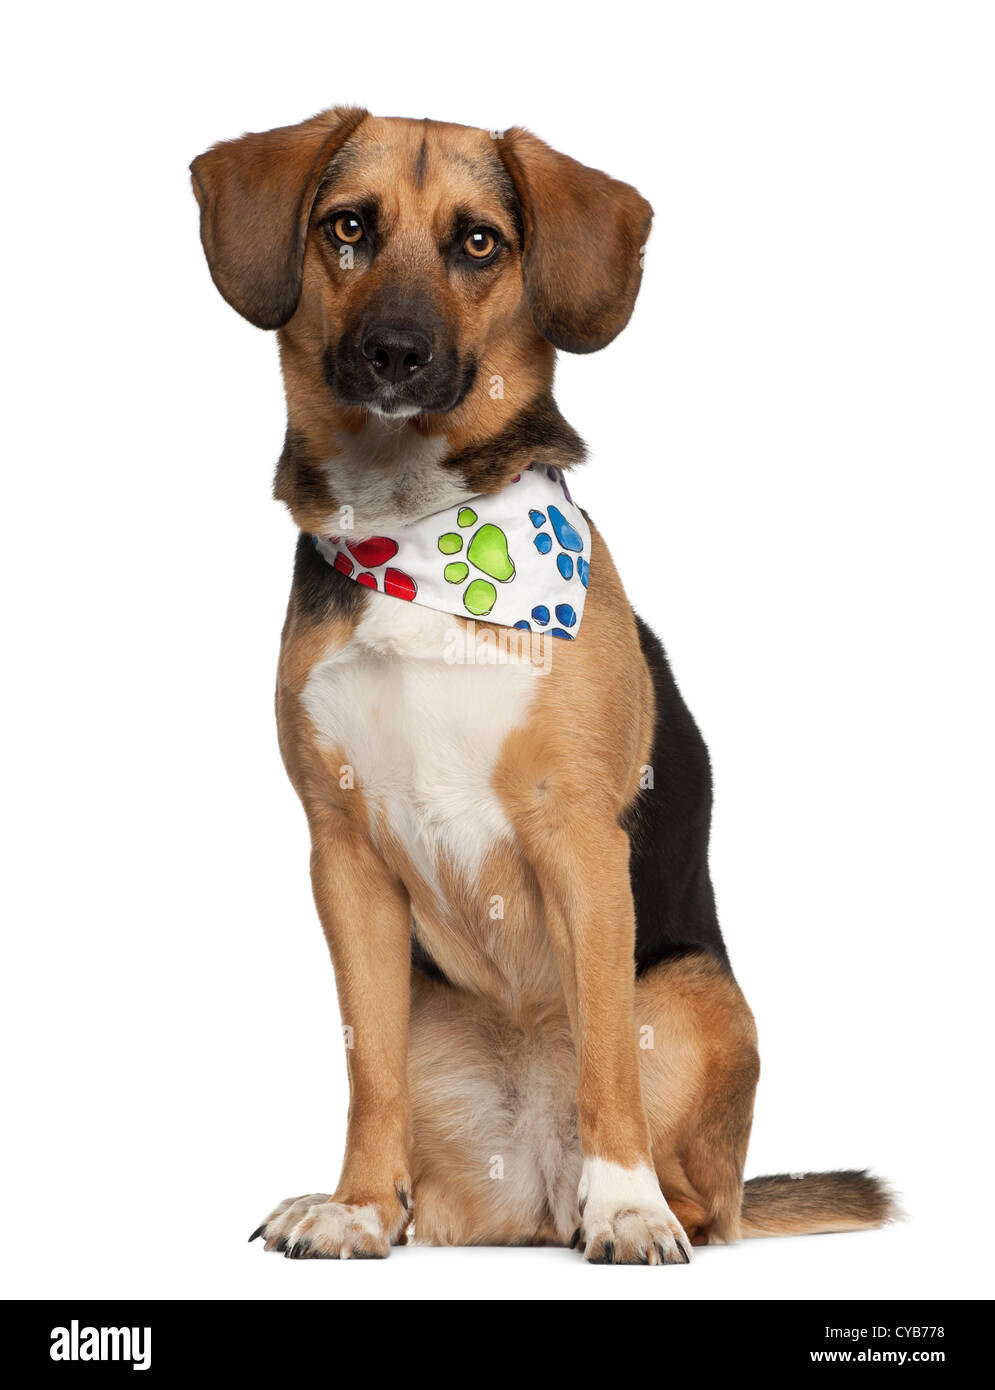 Dog, cross bred with beagle, 2 years old, wearing neckerchief sitting against white background - Stock Image